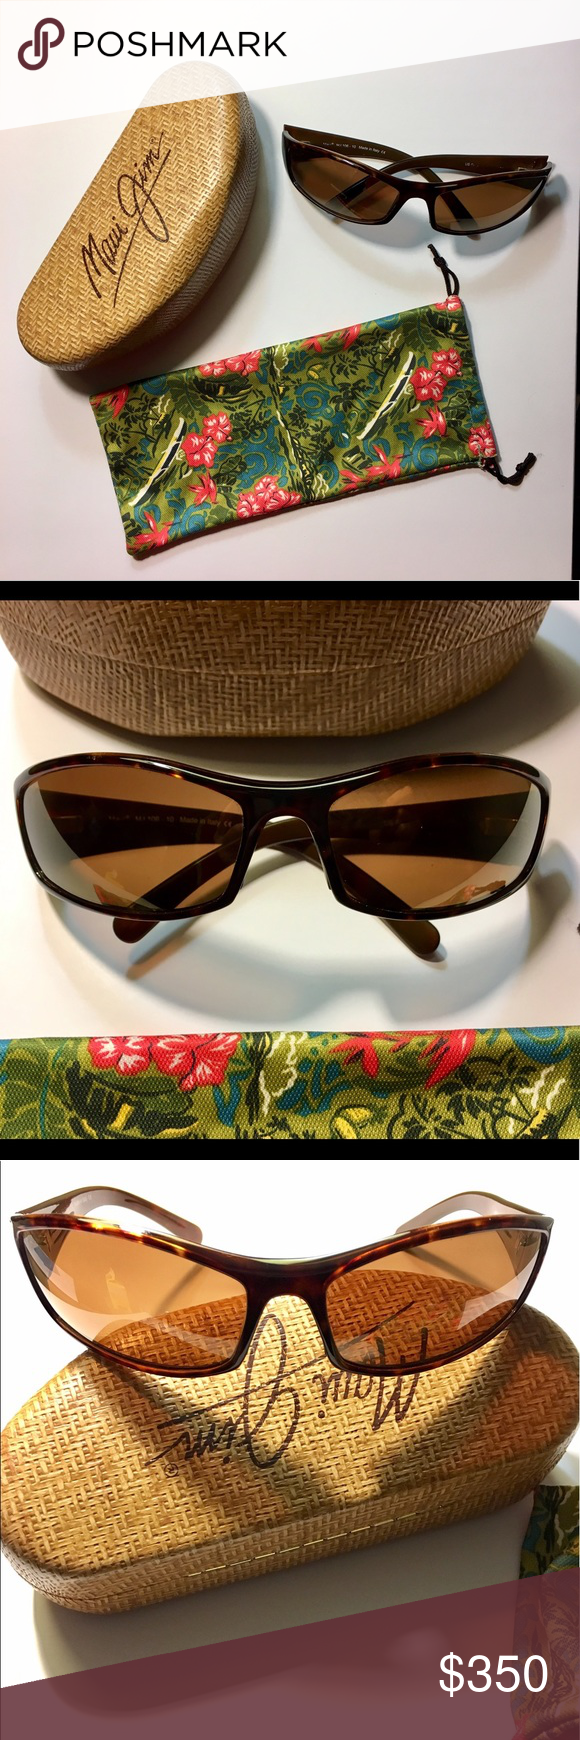 36067787347 The original hard case and microfiber tropical cleaning cloth pouch are  included. Maui Jim Accessories Sunglasses